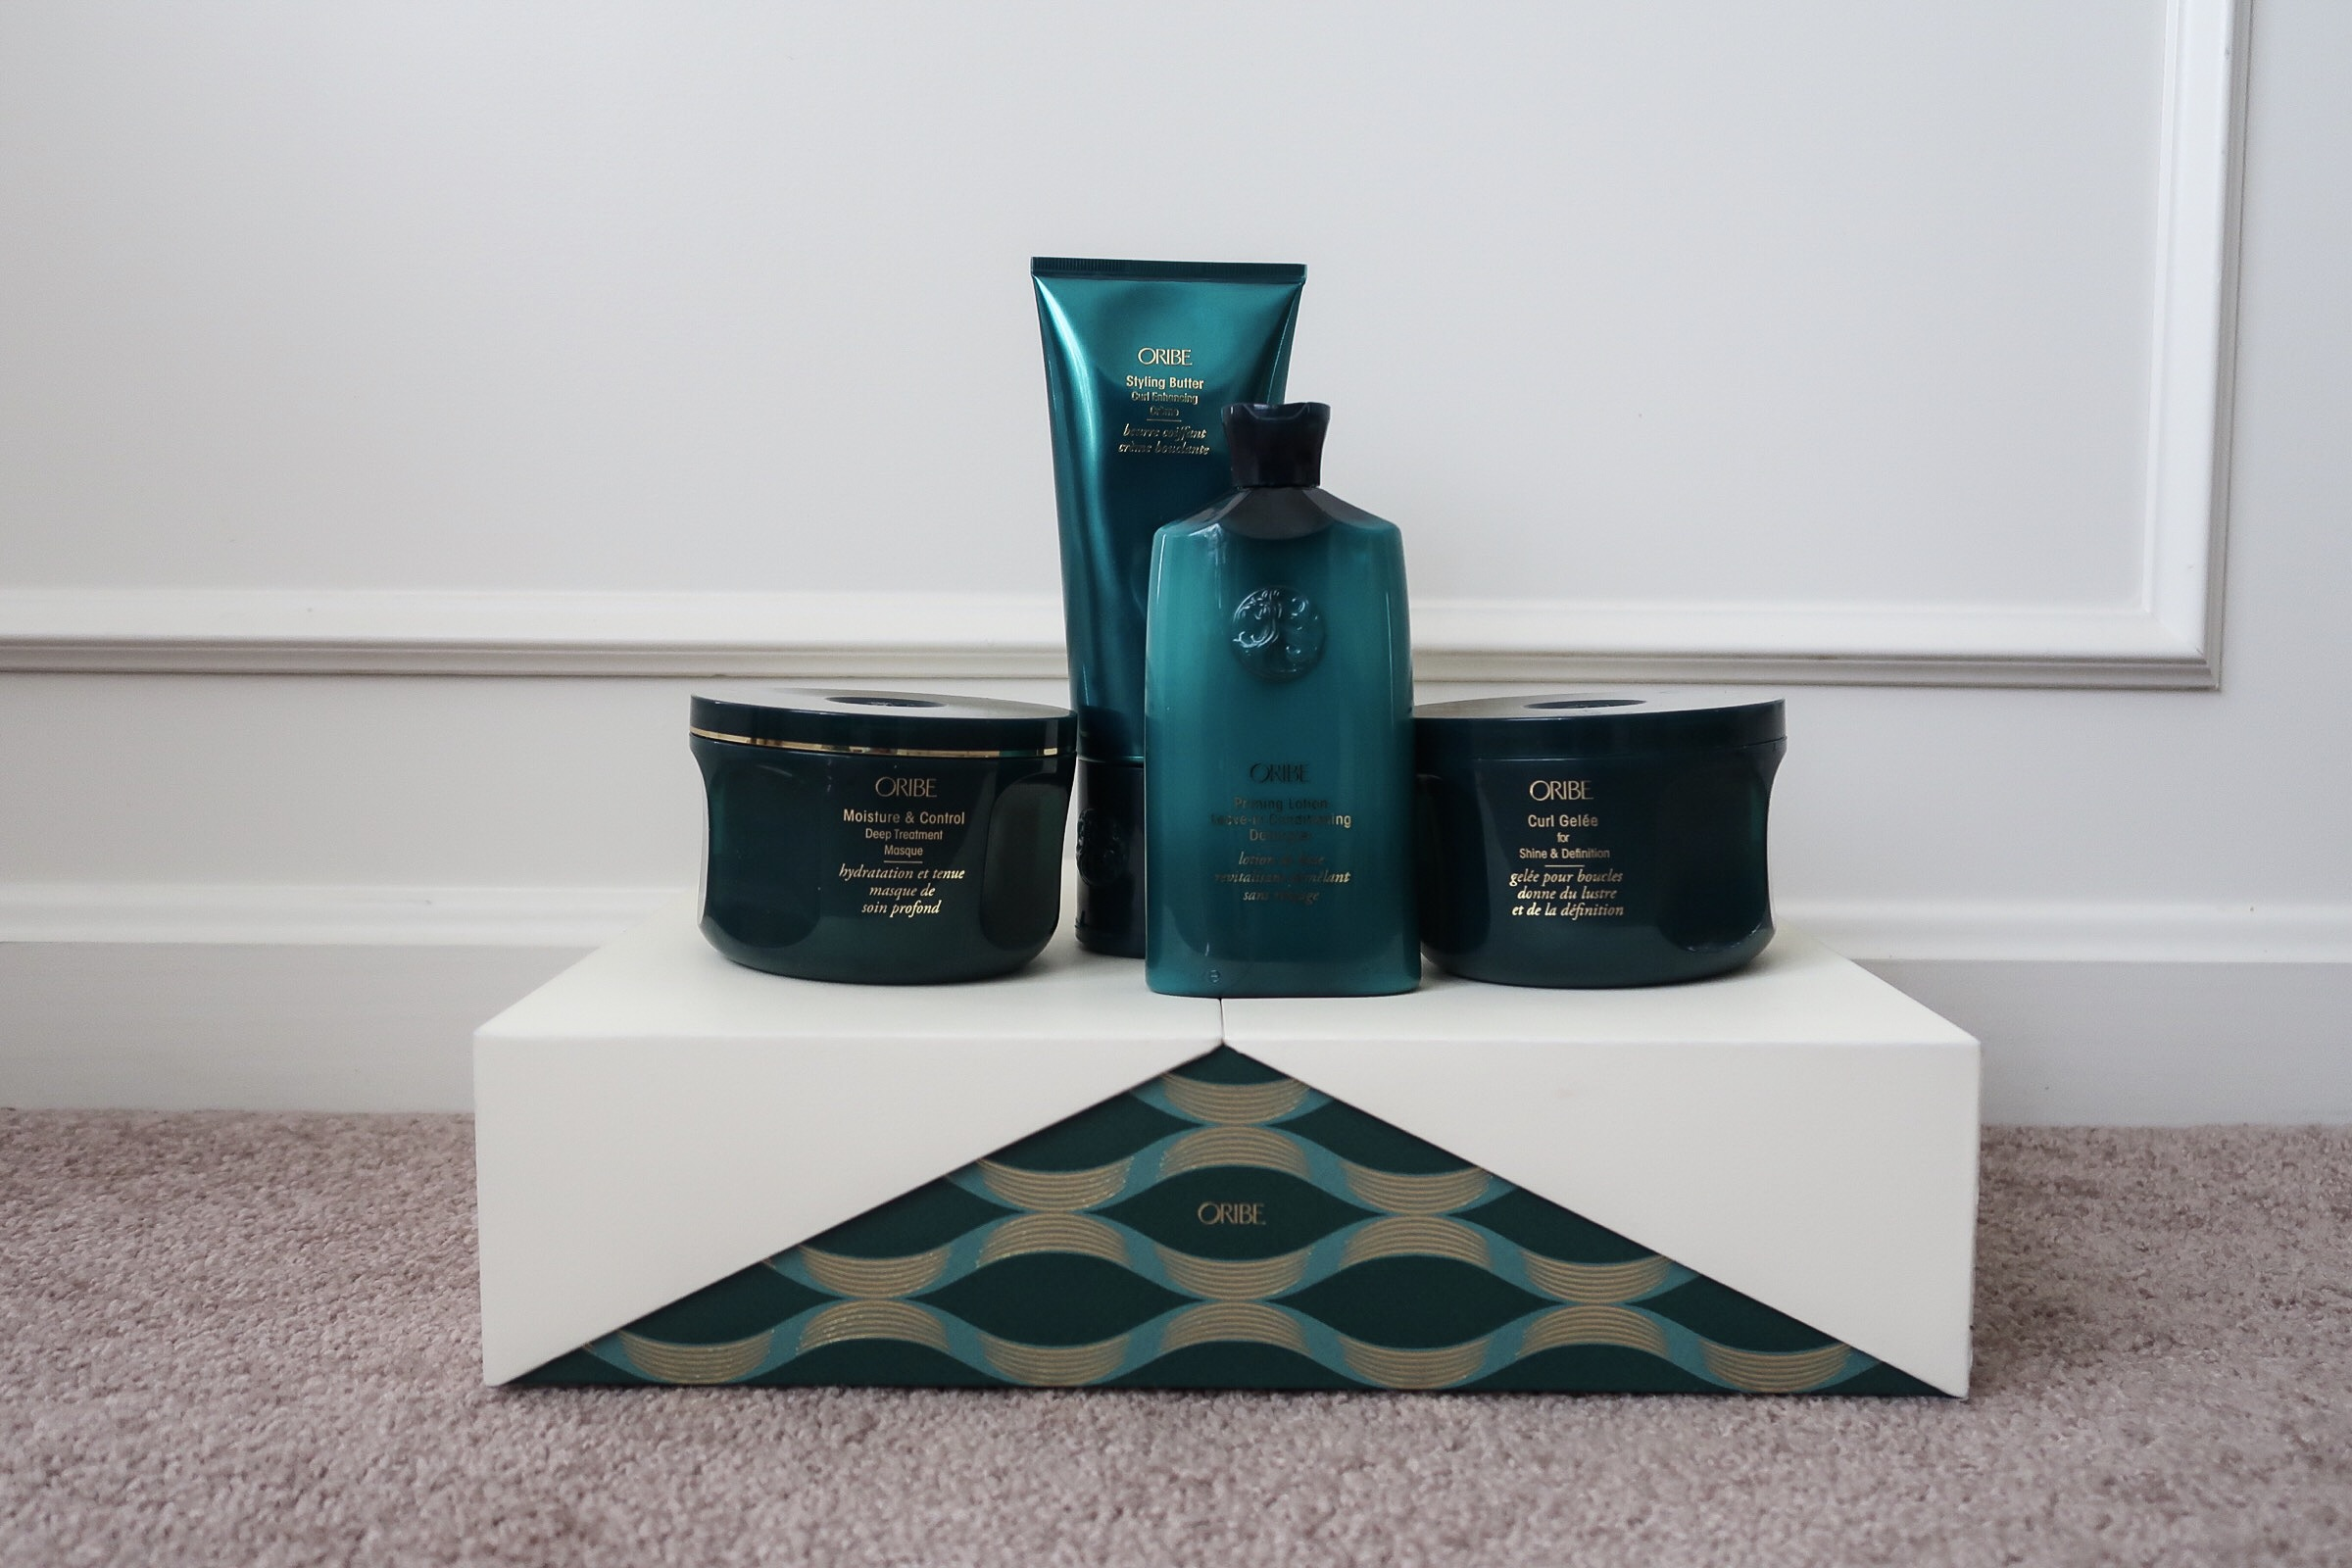 Luxury Haircare for Curly Girls? Yas! Oribe's Highly Textured Collection Launch* - Finally, we coily and curly girls can have the spa-like wash day experience too!